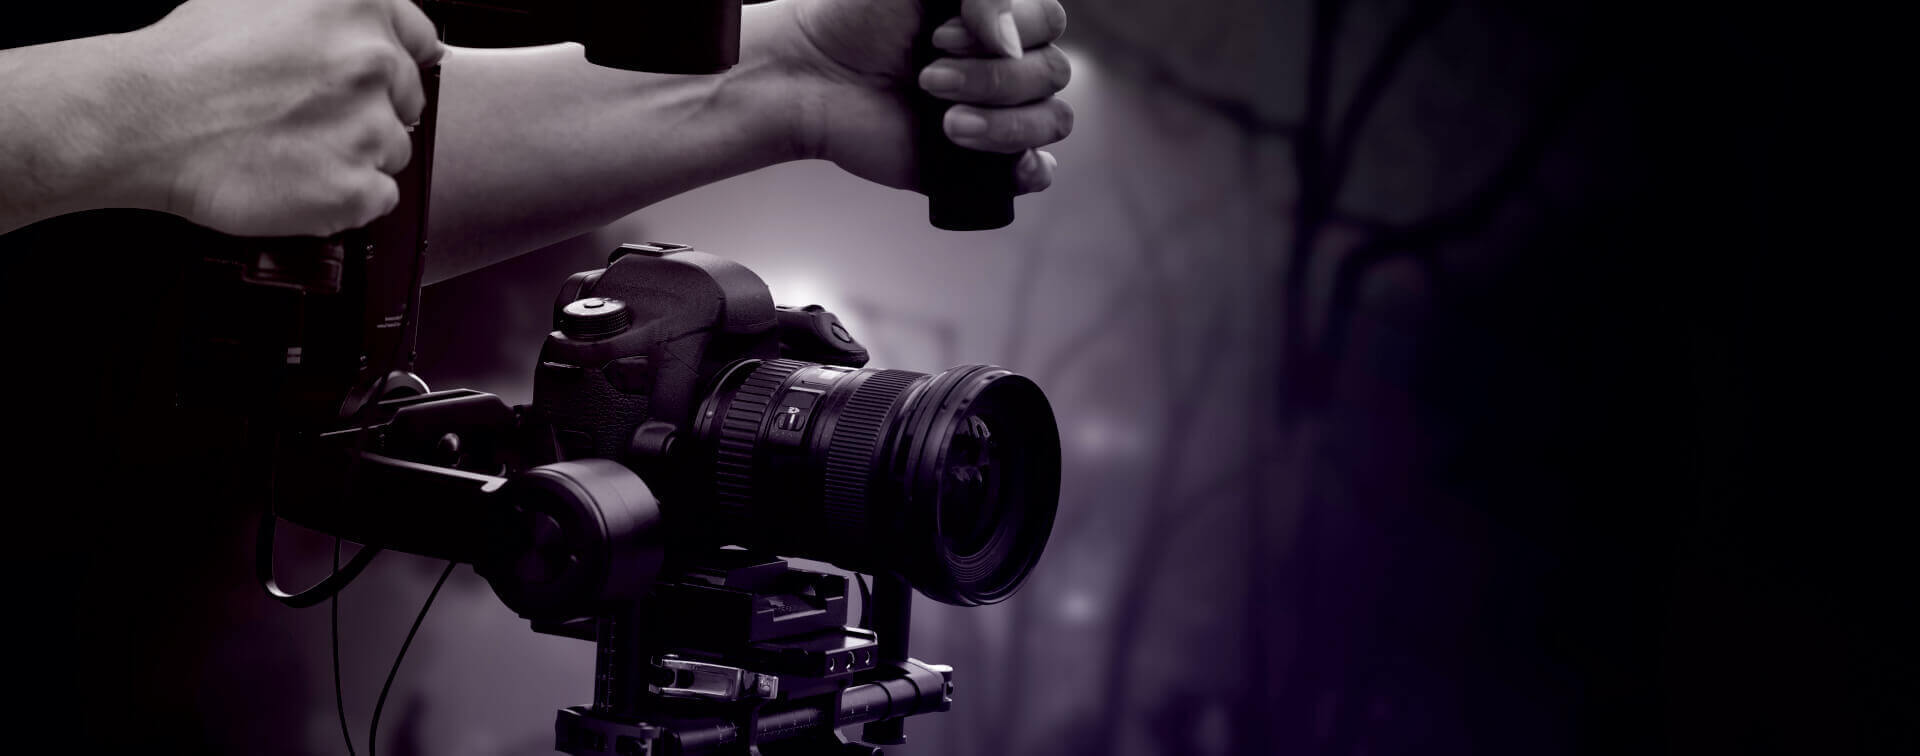 PATSAV | Videography Course